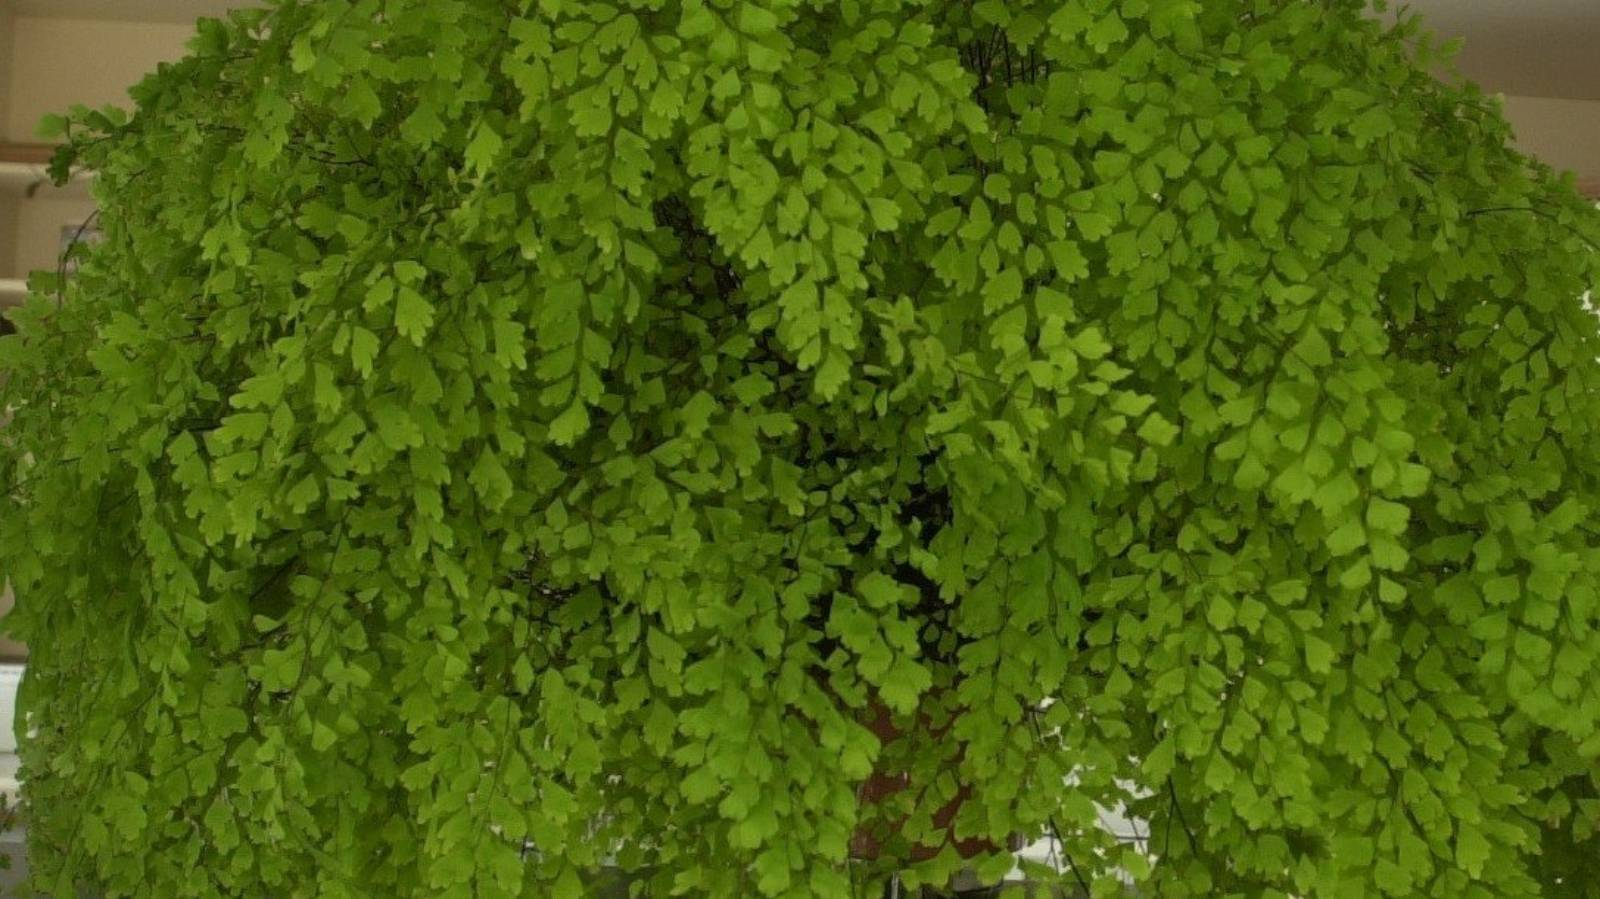 Maidenhair ferns: the plant that 'needs mermaid tears' to live